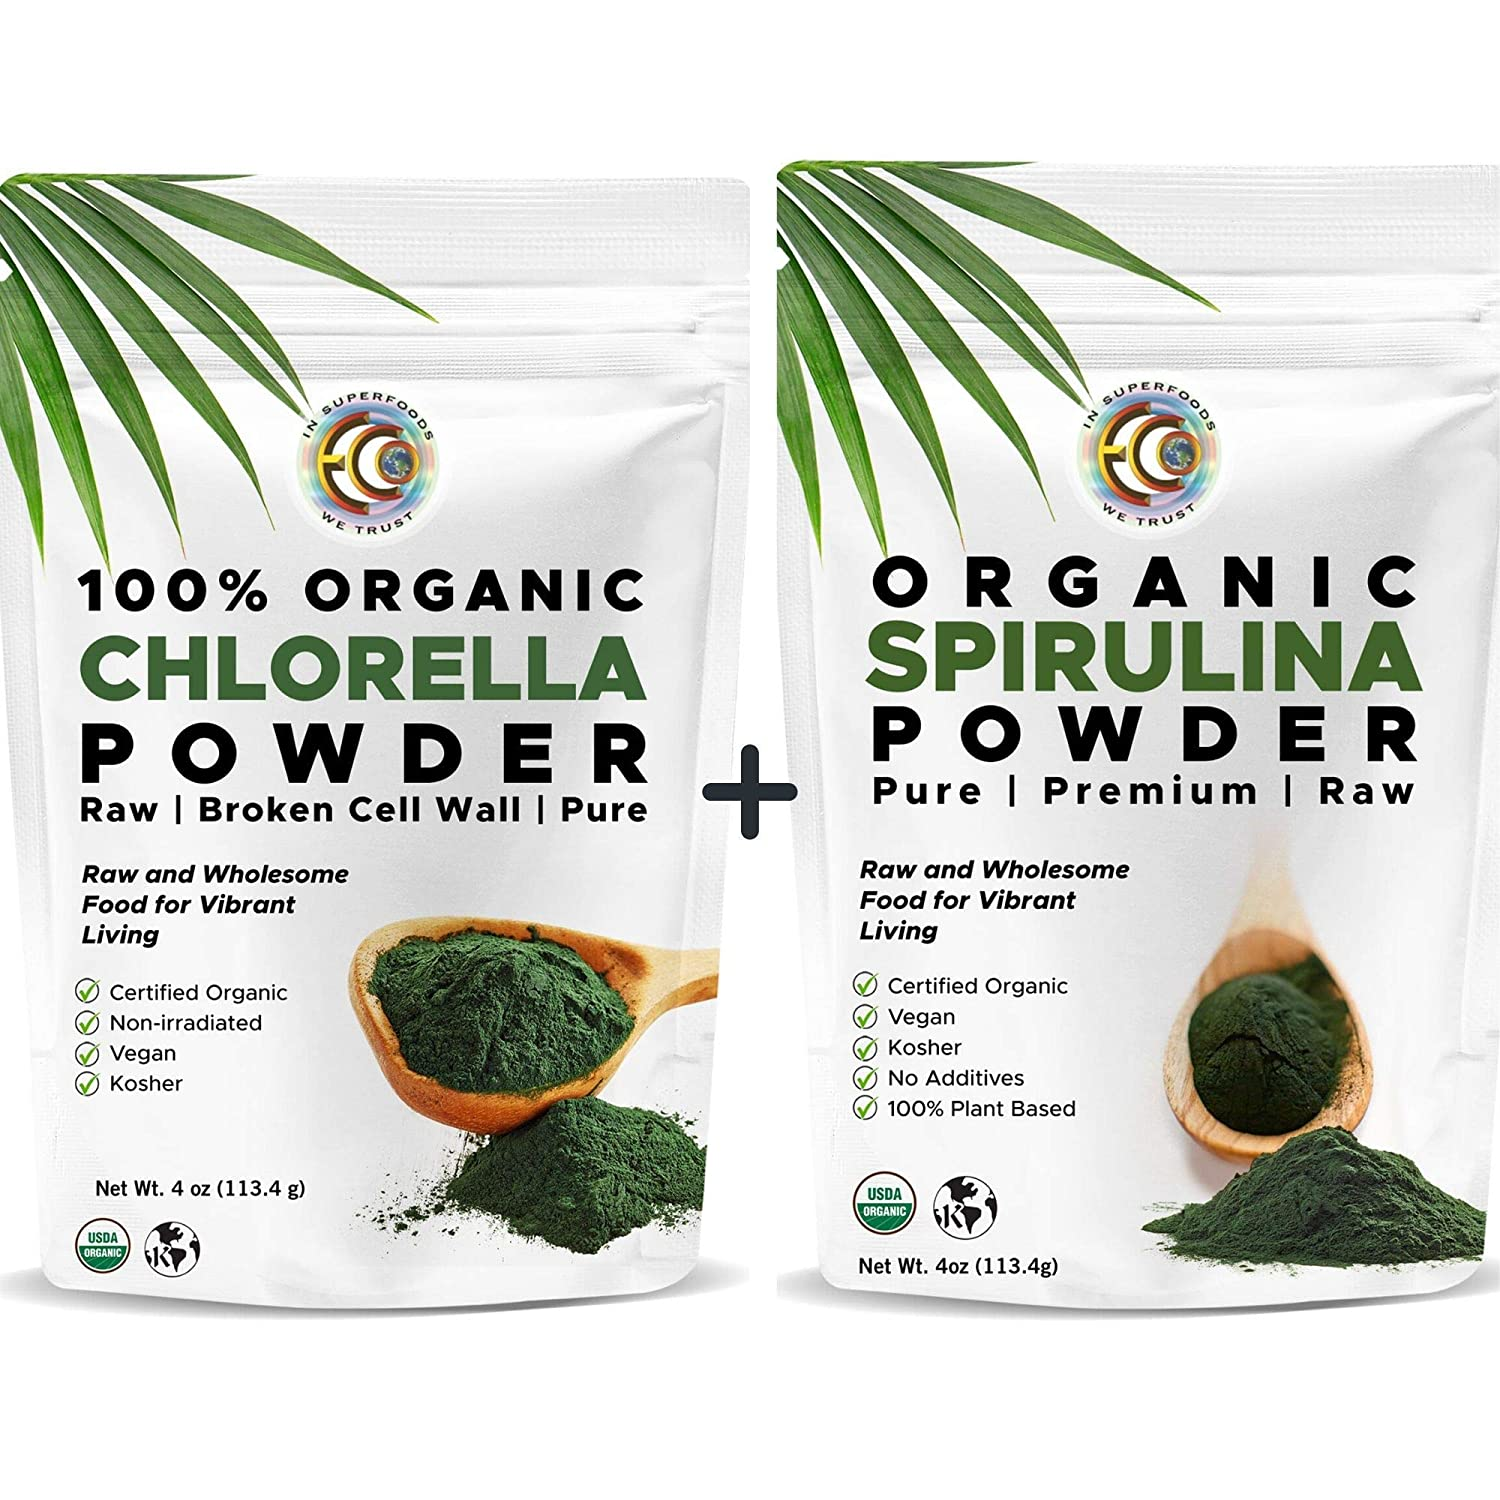 Earth Circle Organics | Organic Spirulina & Chlorella Powder, Kosher, Non-Irradiated | Pure Vegan Protein | Premium Superfood, High in Amino Acids and Antioxidants